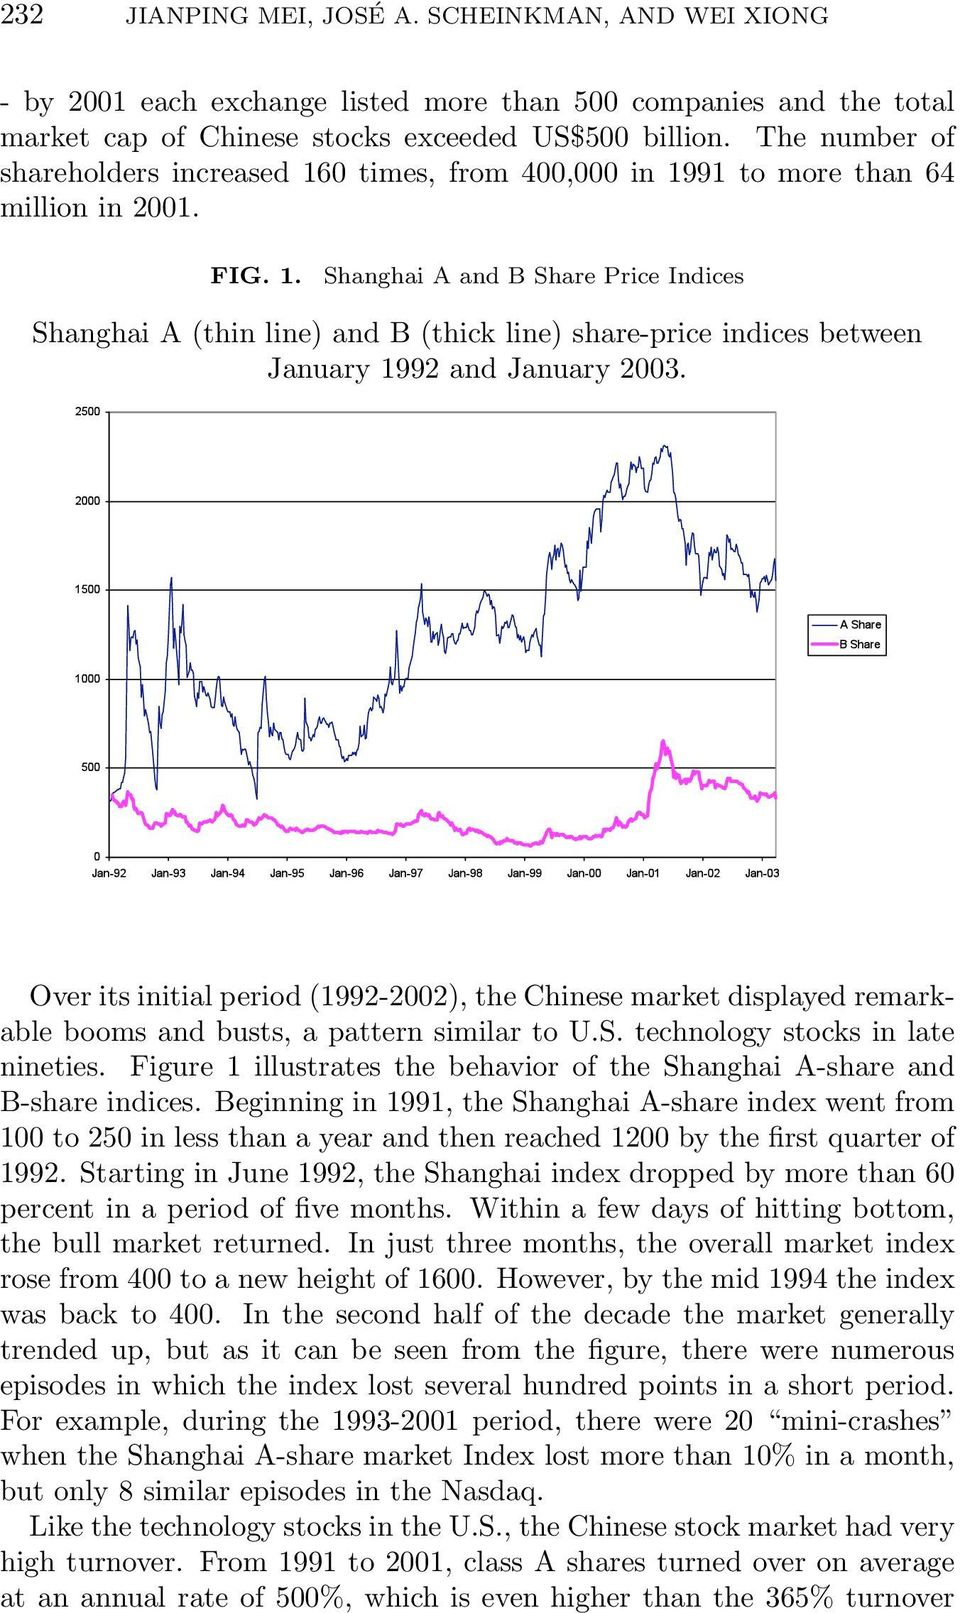 Over its initial period (1992-2002), the Chinese market displayed remarkable booms and busts, a pattern similar to U.S. technology stocks in late nineties.